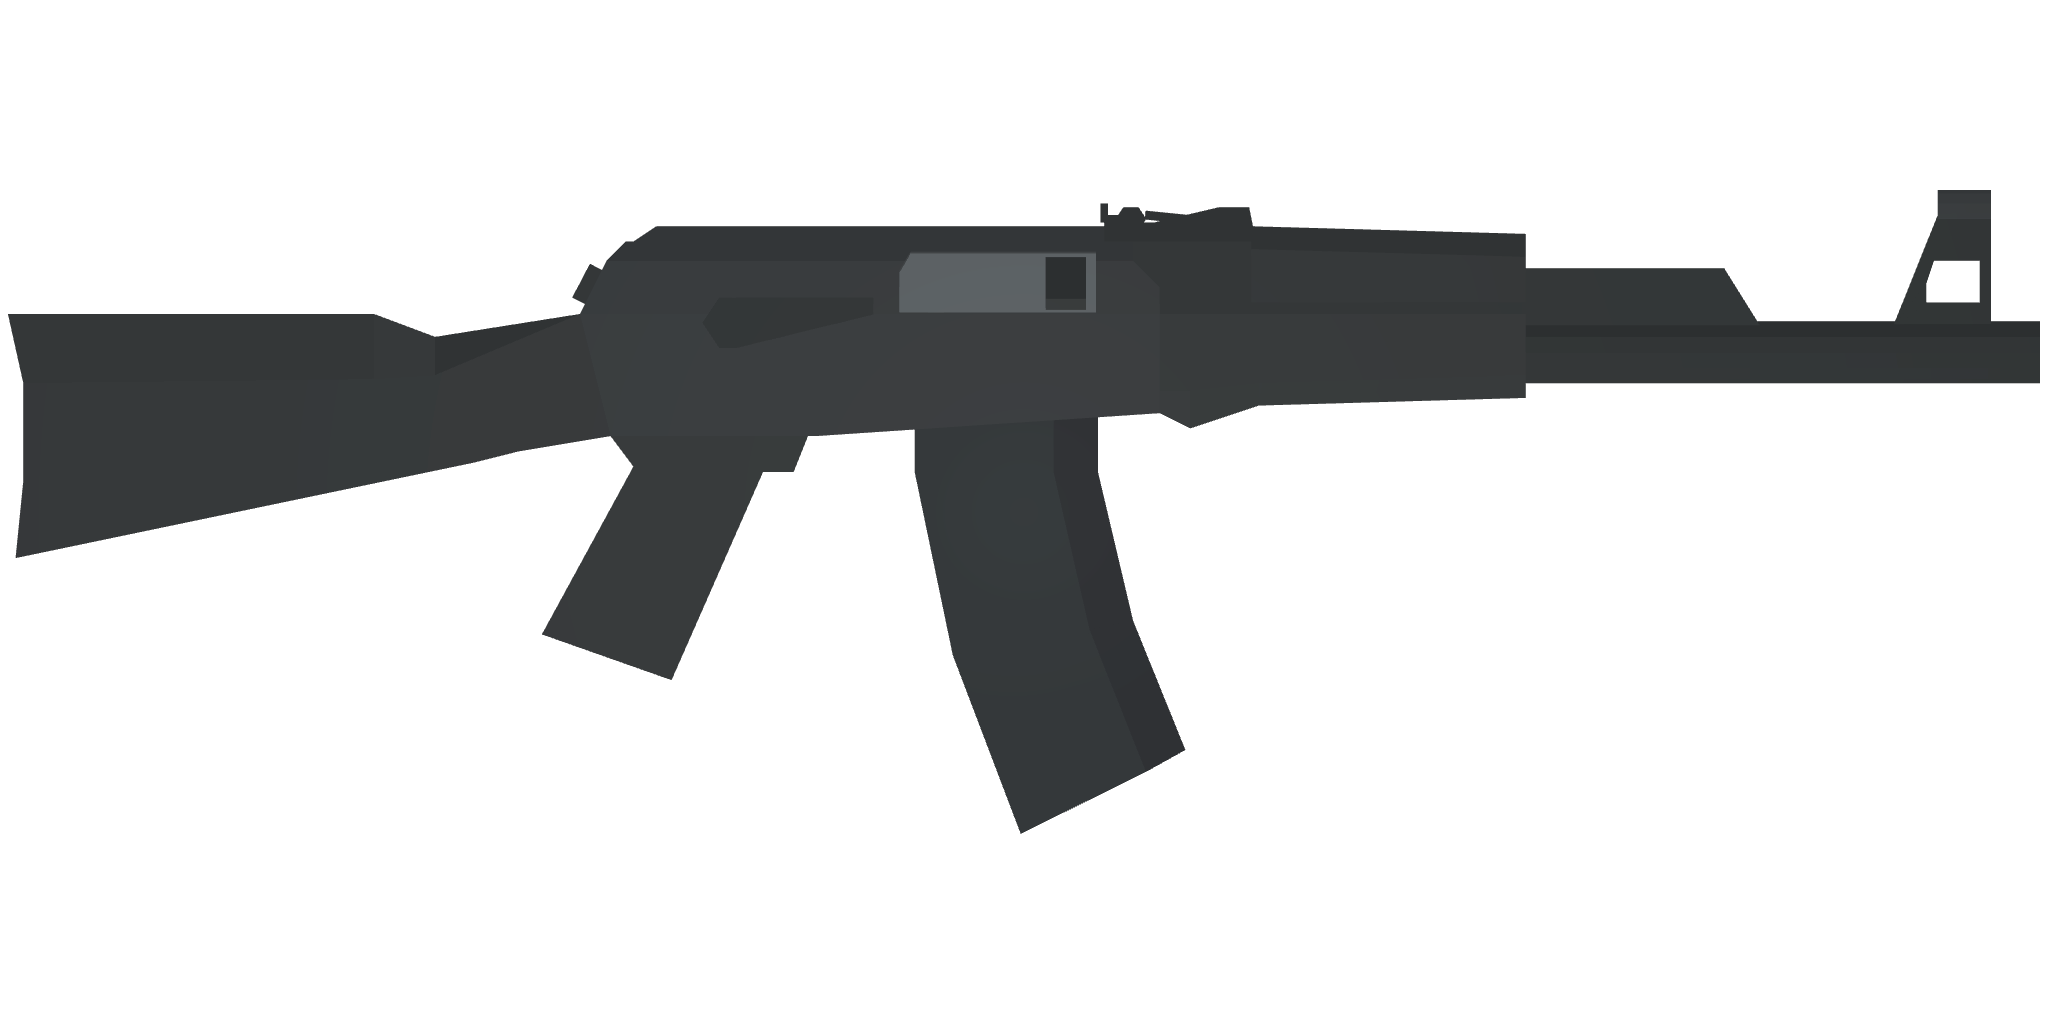 Unturned Uncreated Warfare Mods & All ID List + Attachments - Russian Weapons - 9C0D761